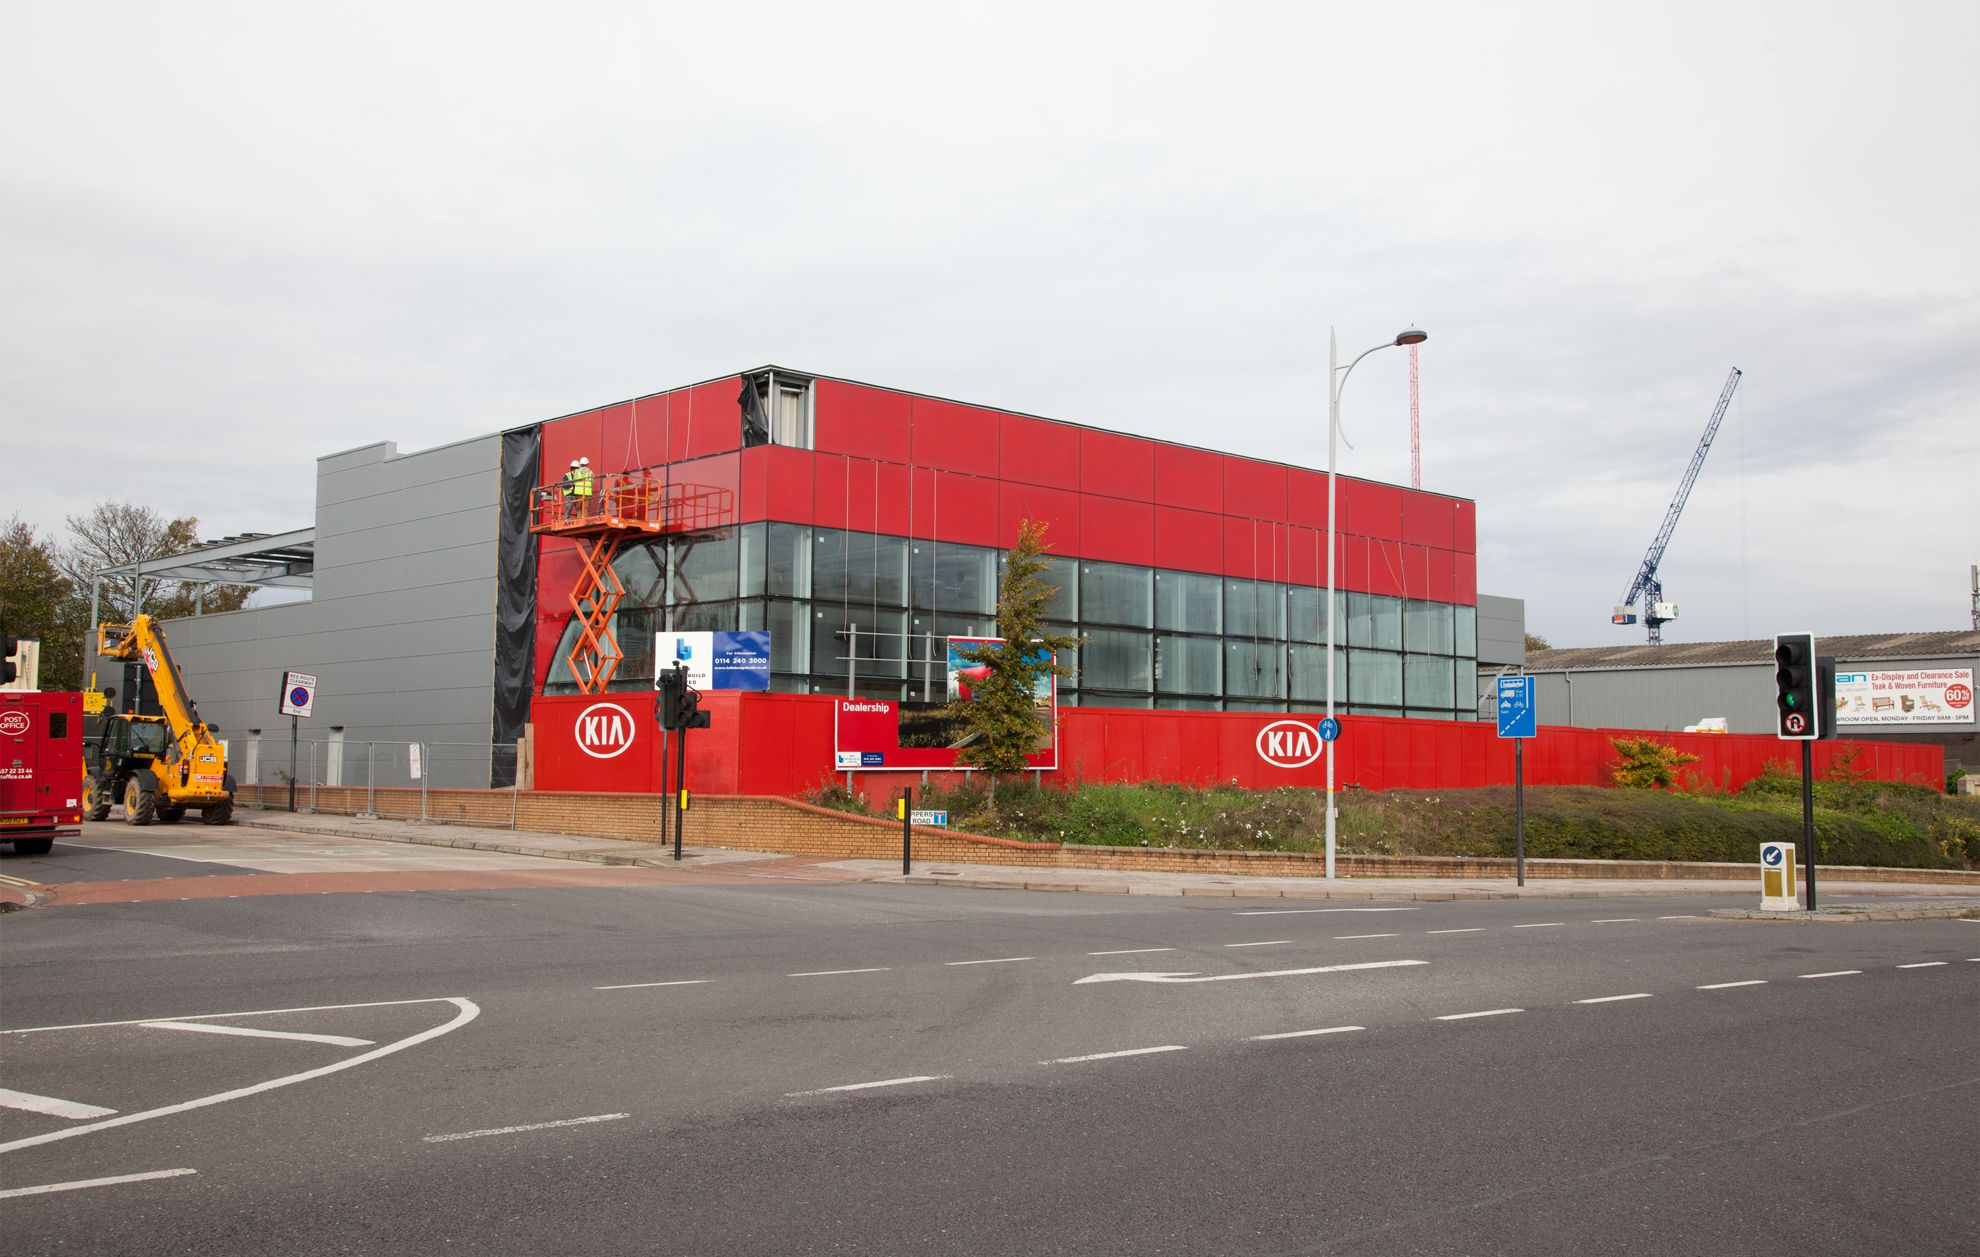 Beadles KIA Dealership